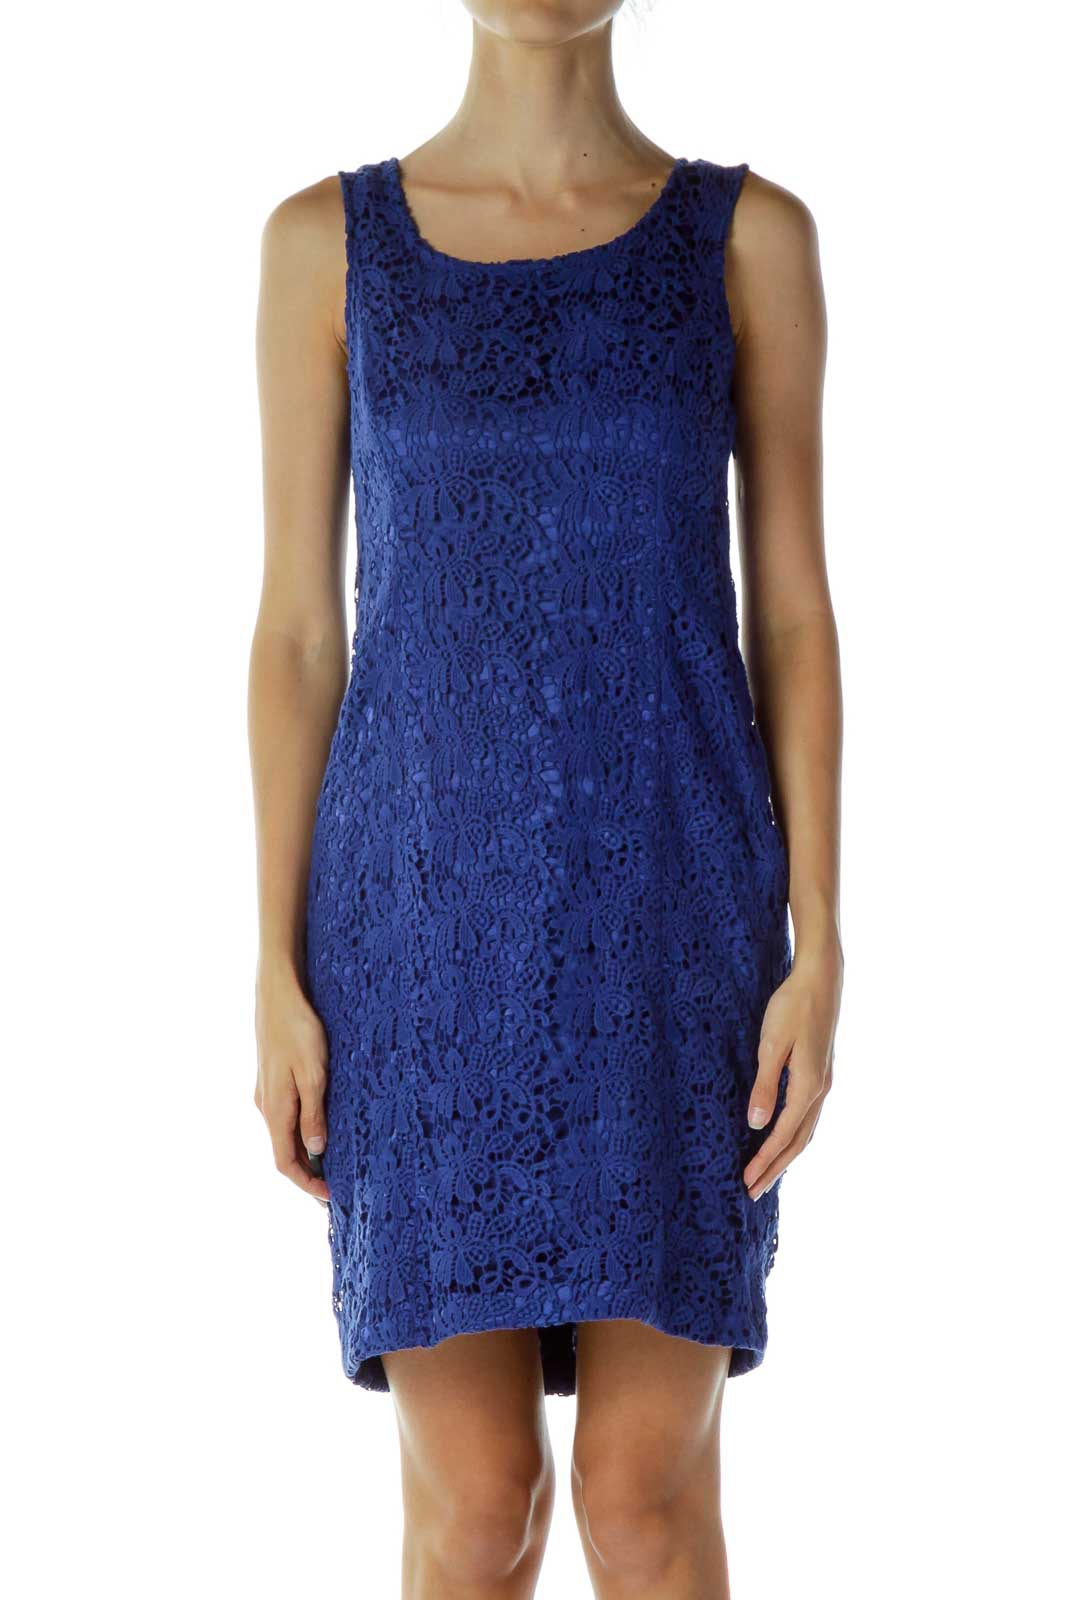 Blue Crocheted Cocktail Dress Front